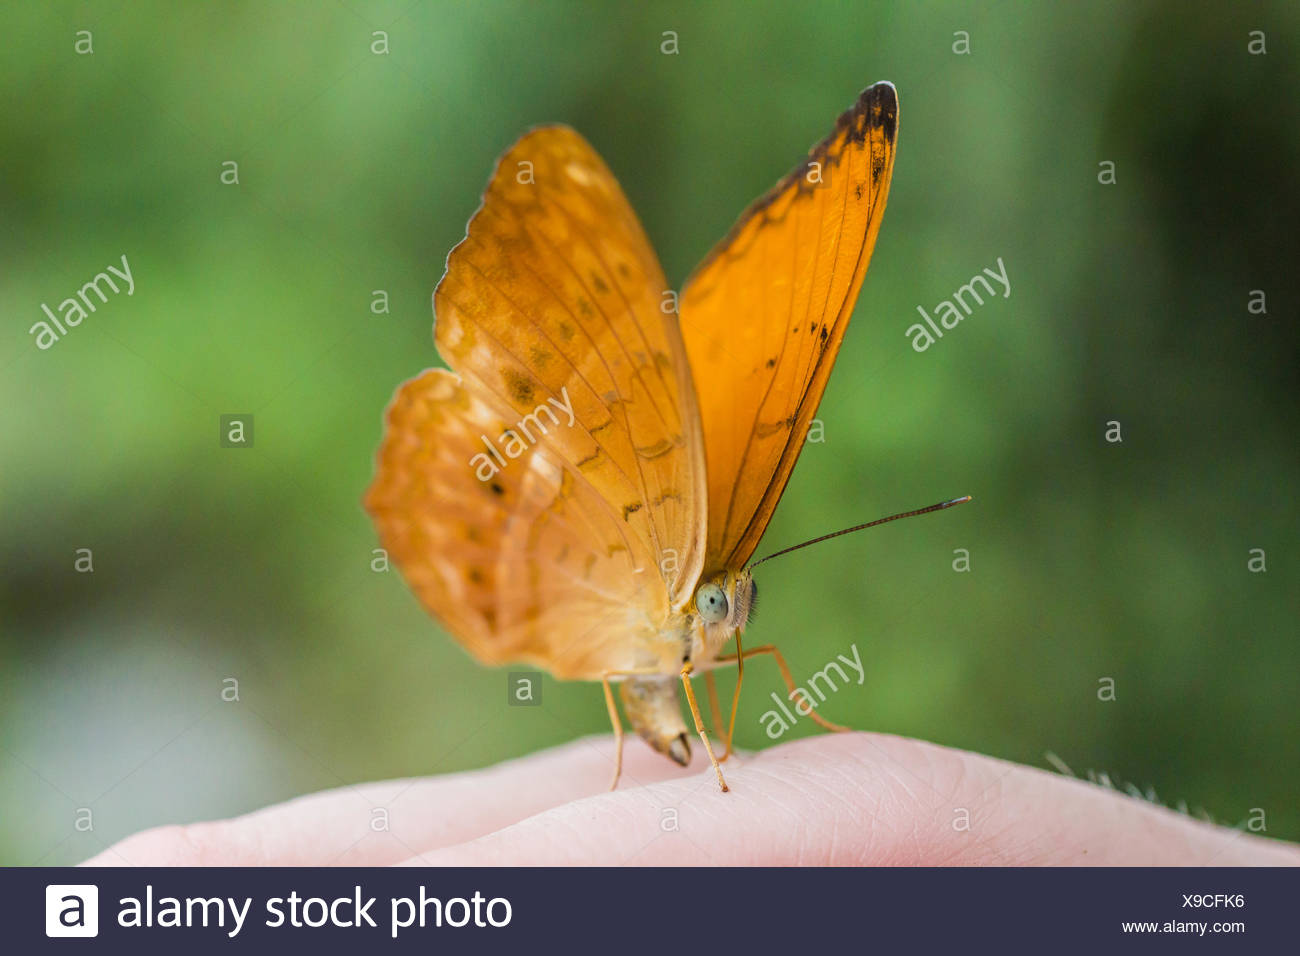 Butterfly on a hand - Stock Image